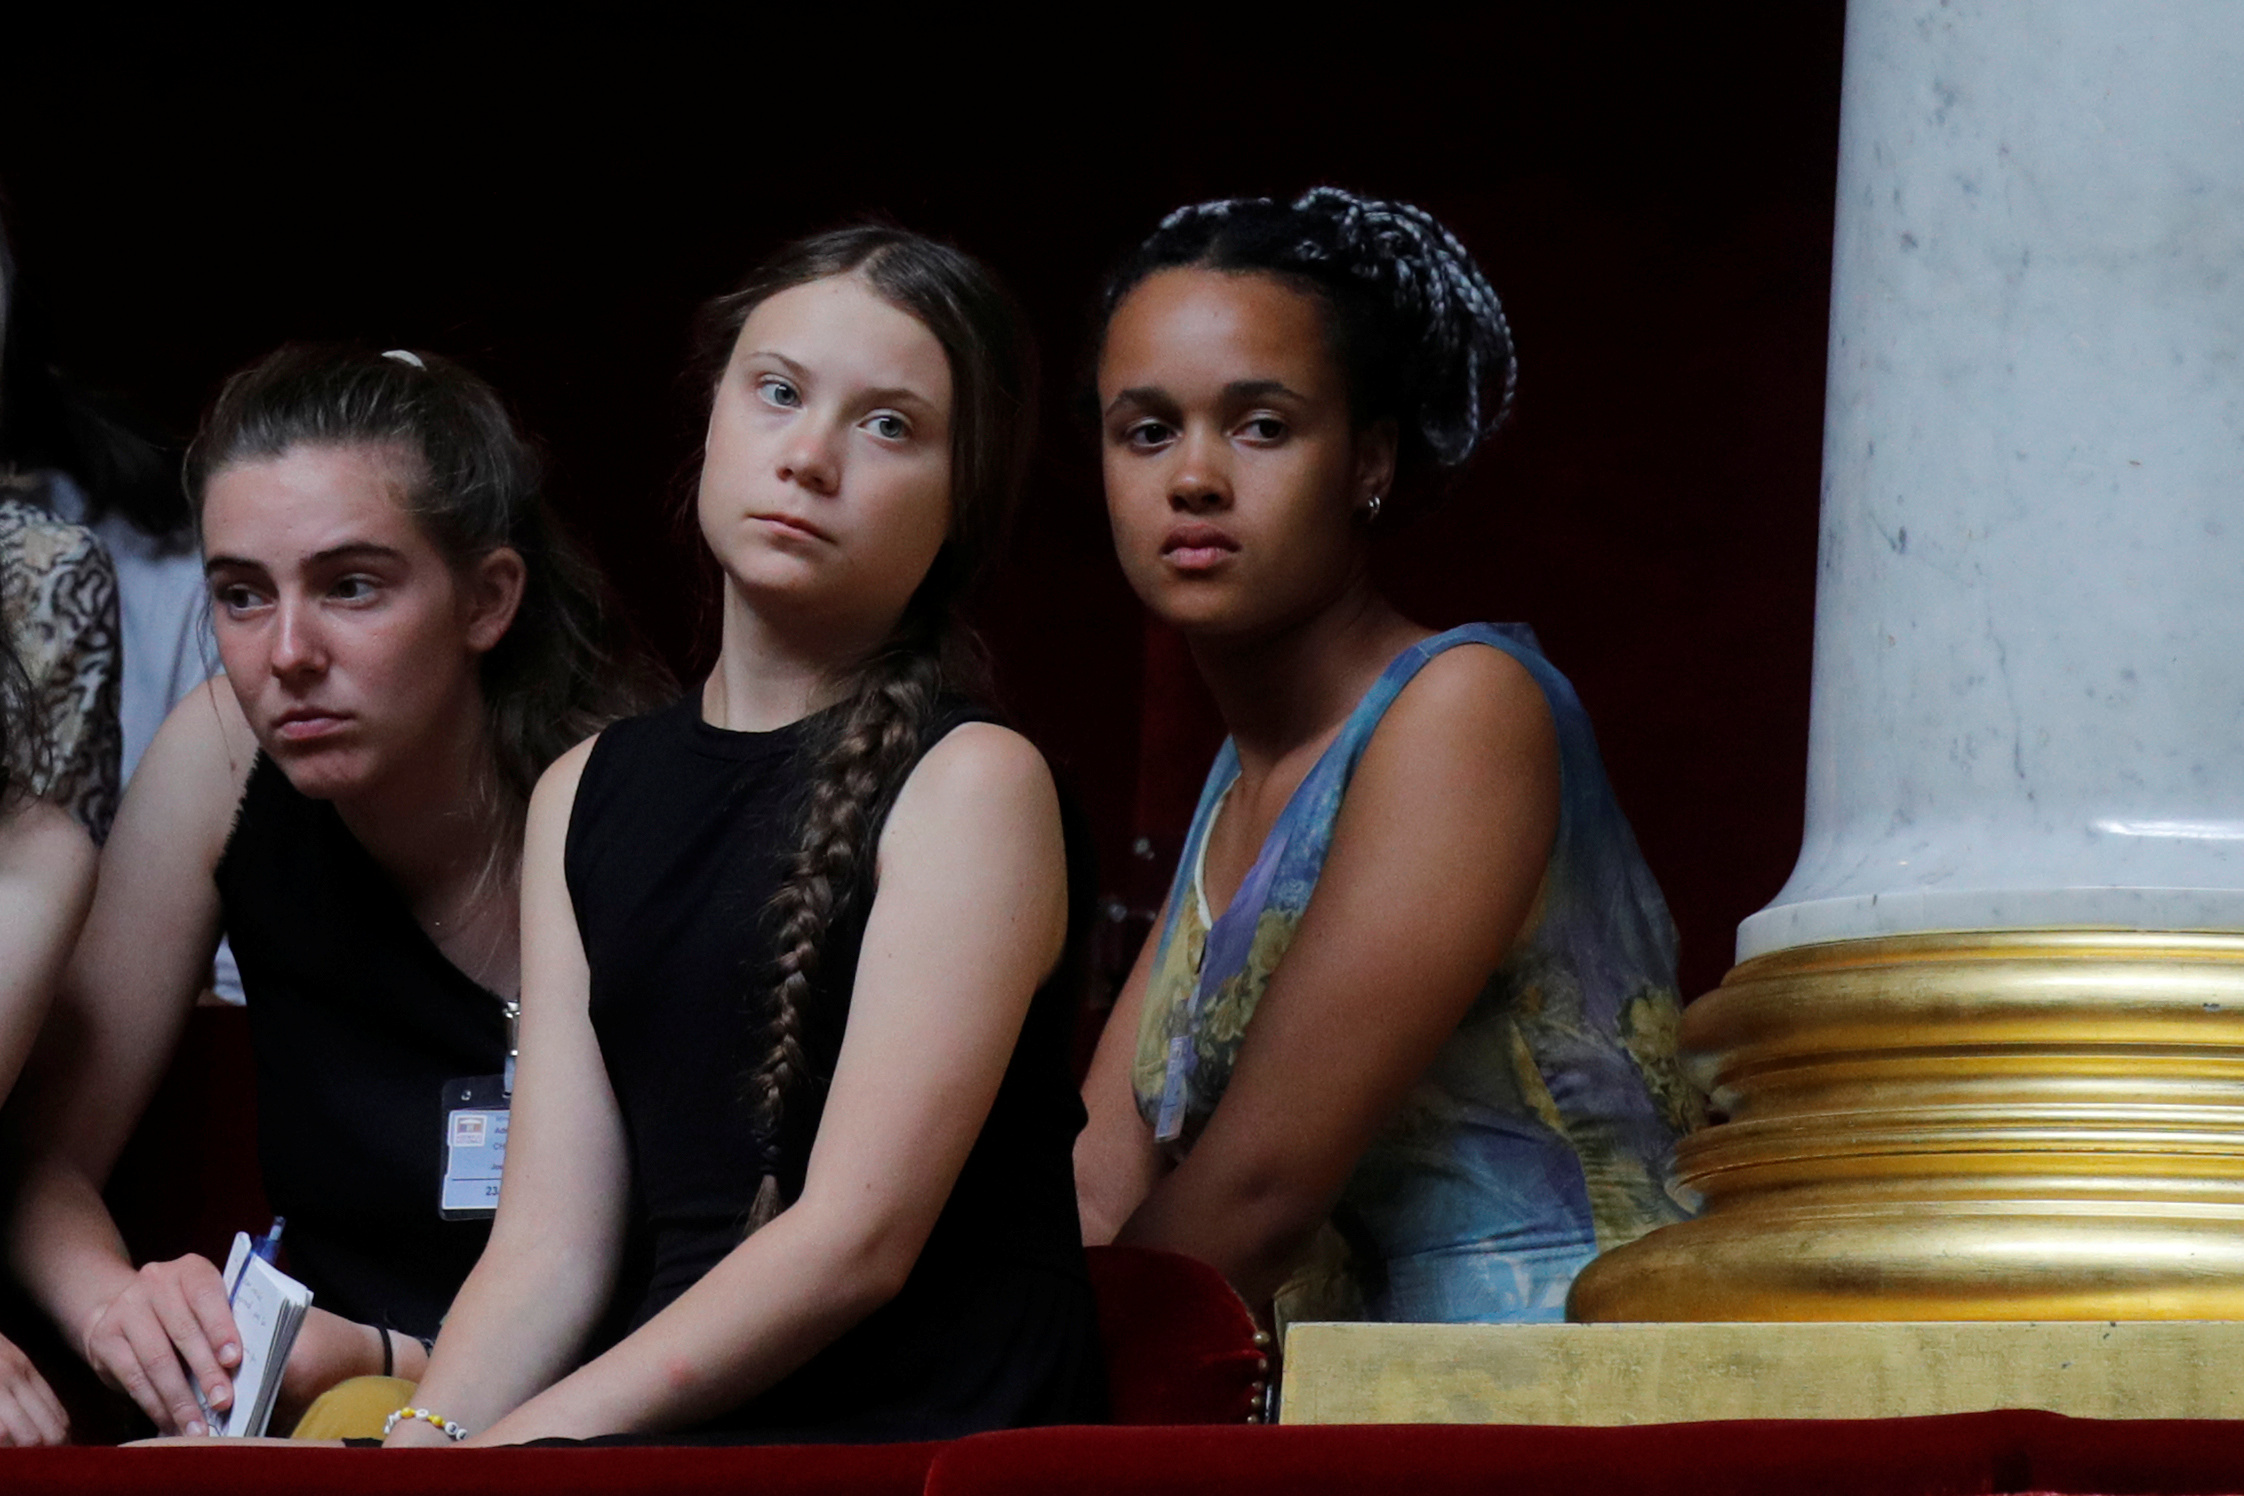 Swedish environmental activist Greta Thunberg, Adelaide Charlier and Alicia Arquetoux, French activists from the Youth for Climate movement, attend the questions to the government session at the National Assembly in Paris, France, July 23, 2019.  REUTERS/Philippe Wojazer